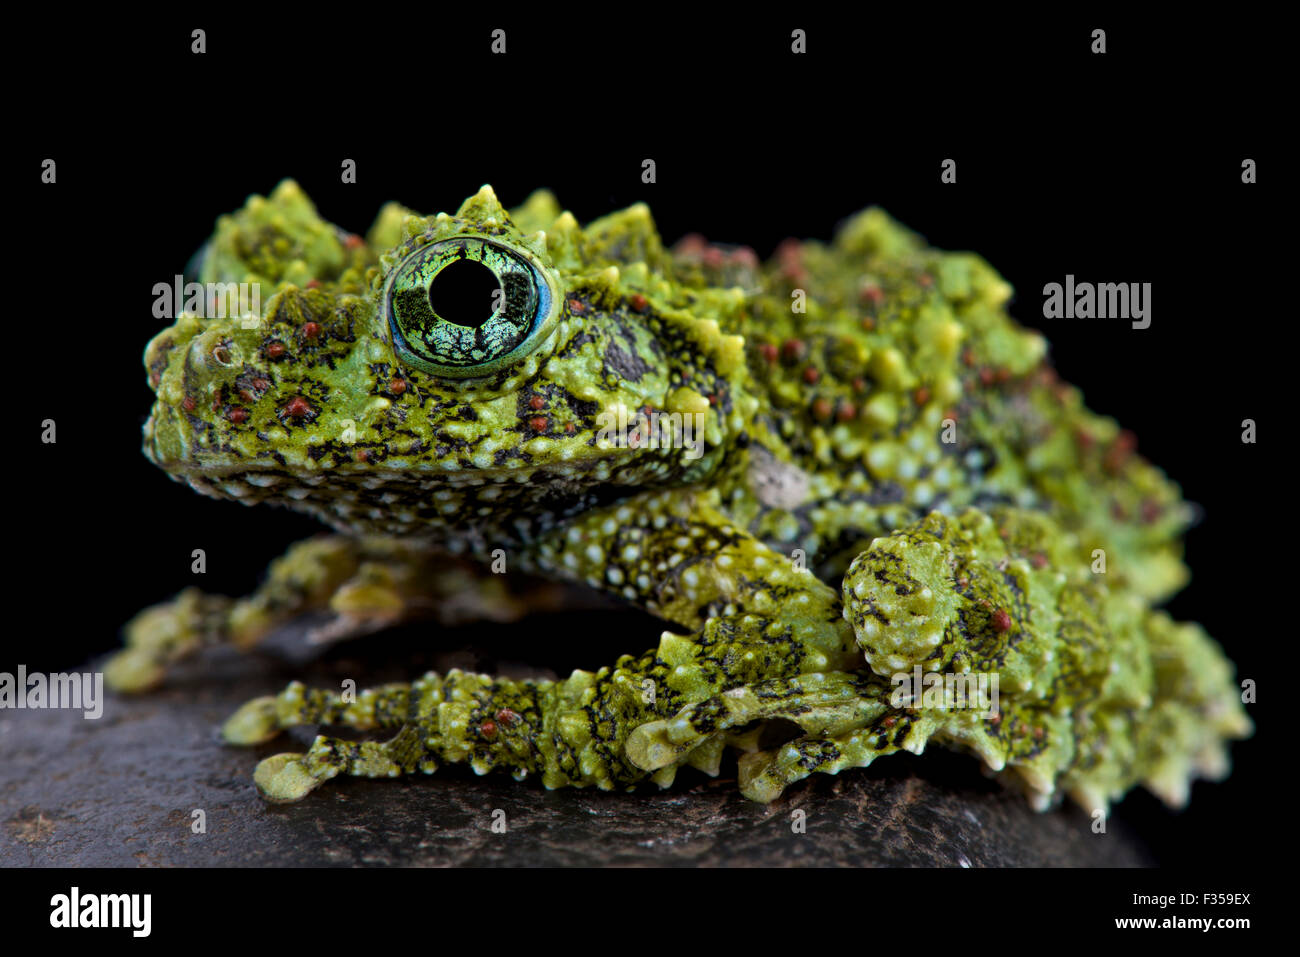 Mossy (Theloderma corticale rana) Imagen De Stock